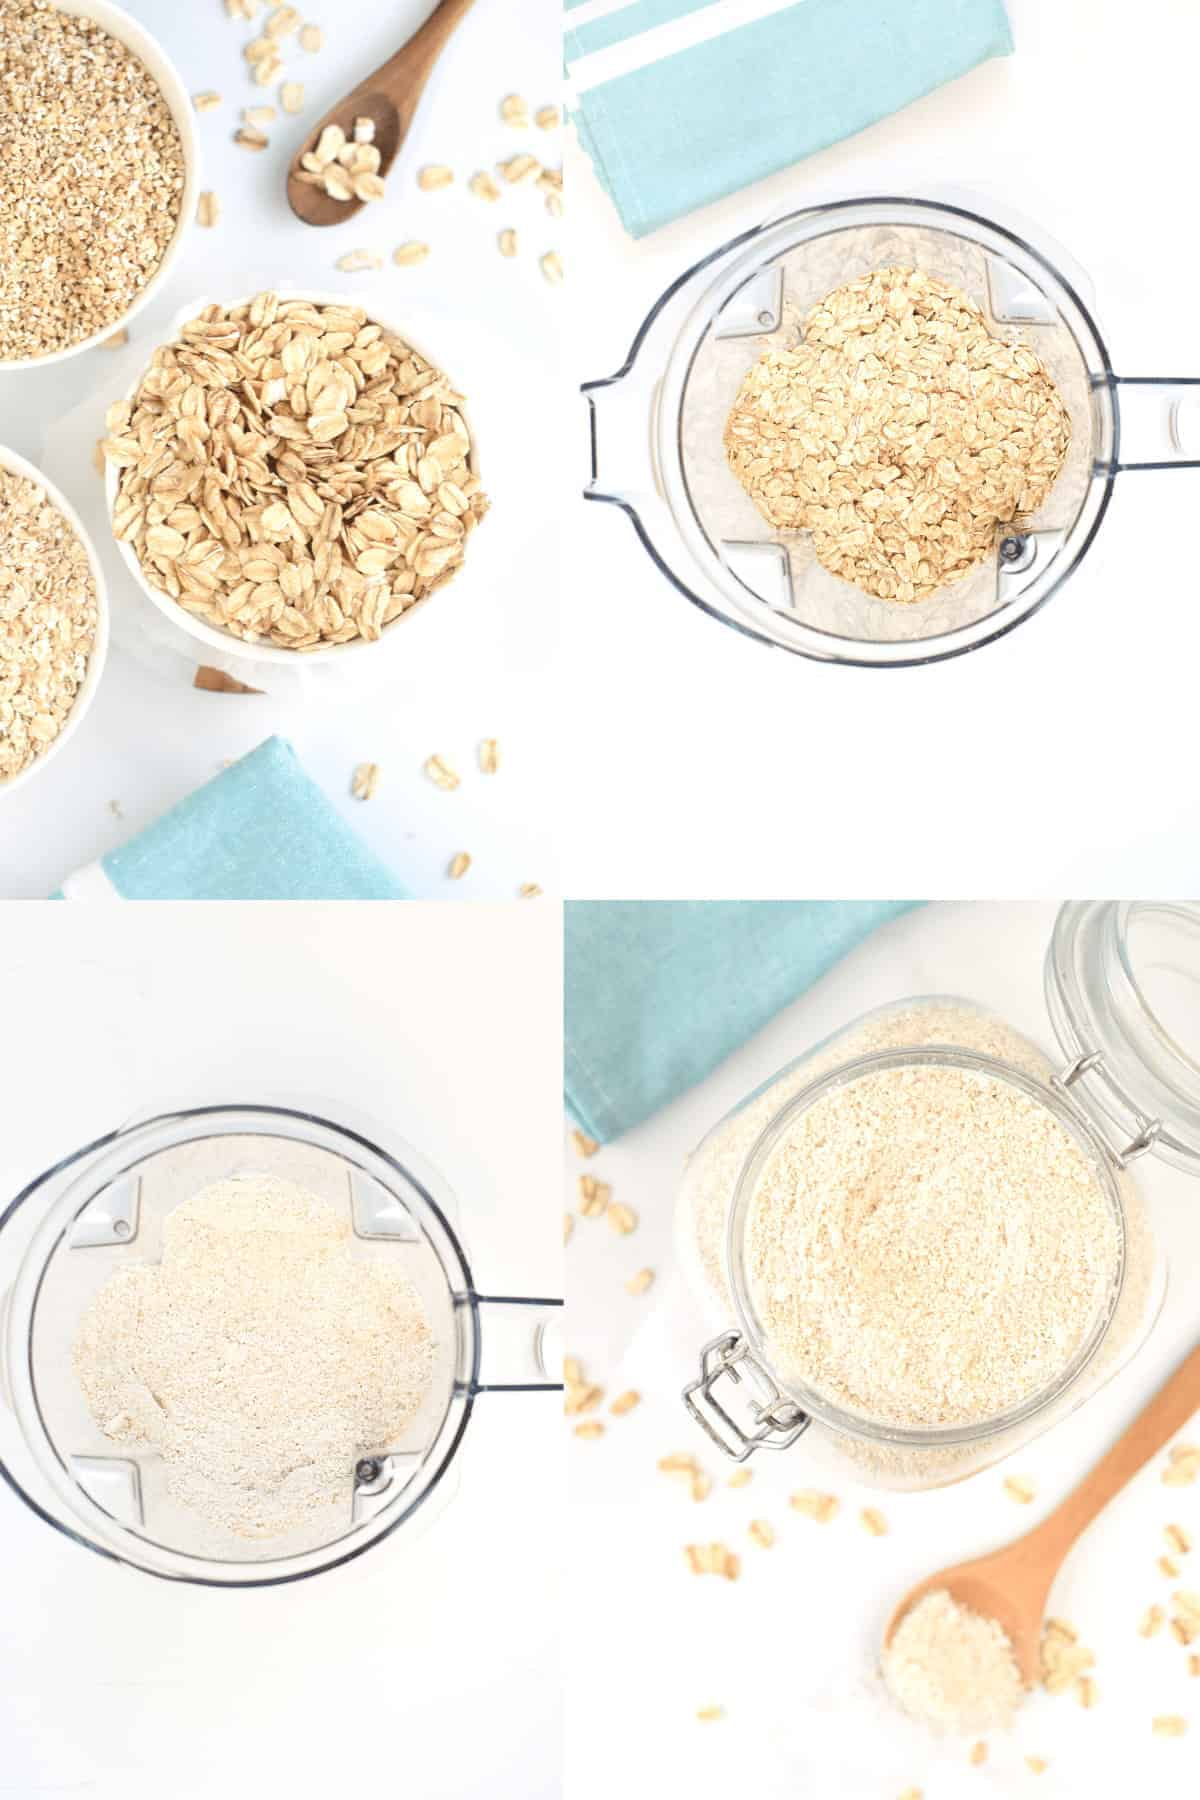 How to make Oat flour at home